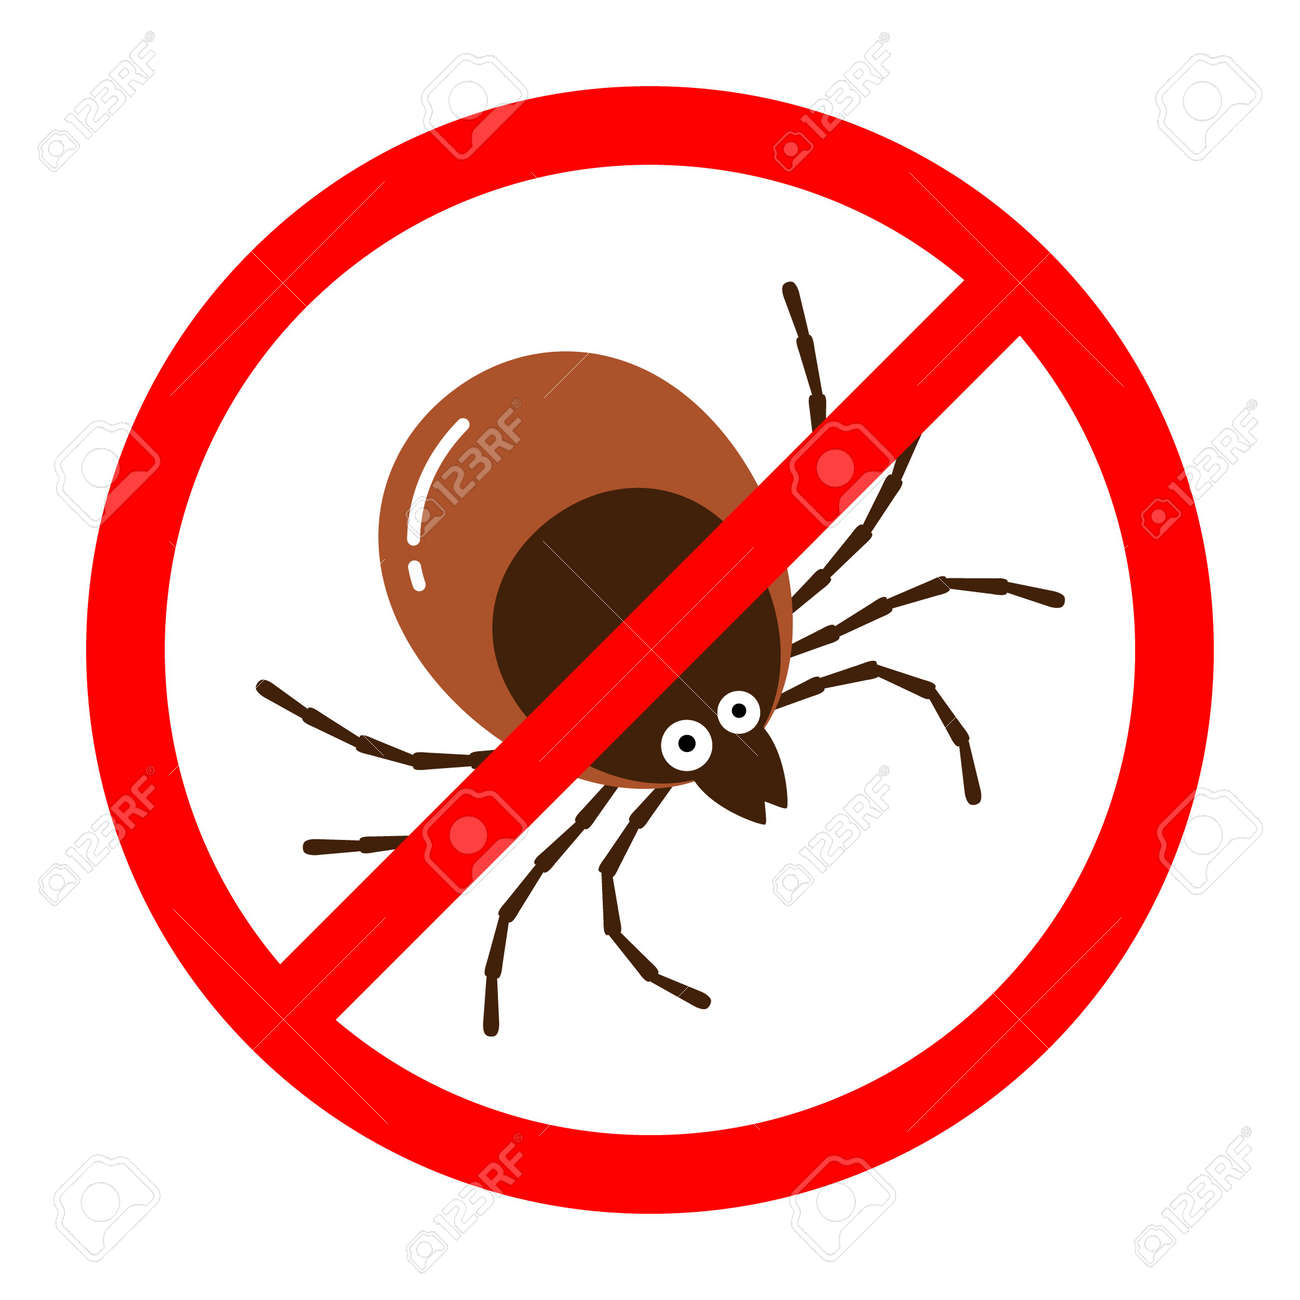 Red round anti tick warning sign with detailed tick insect bug. - 158998900